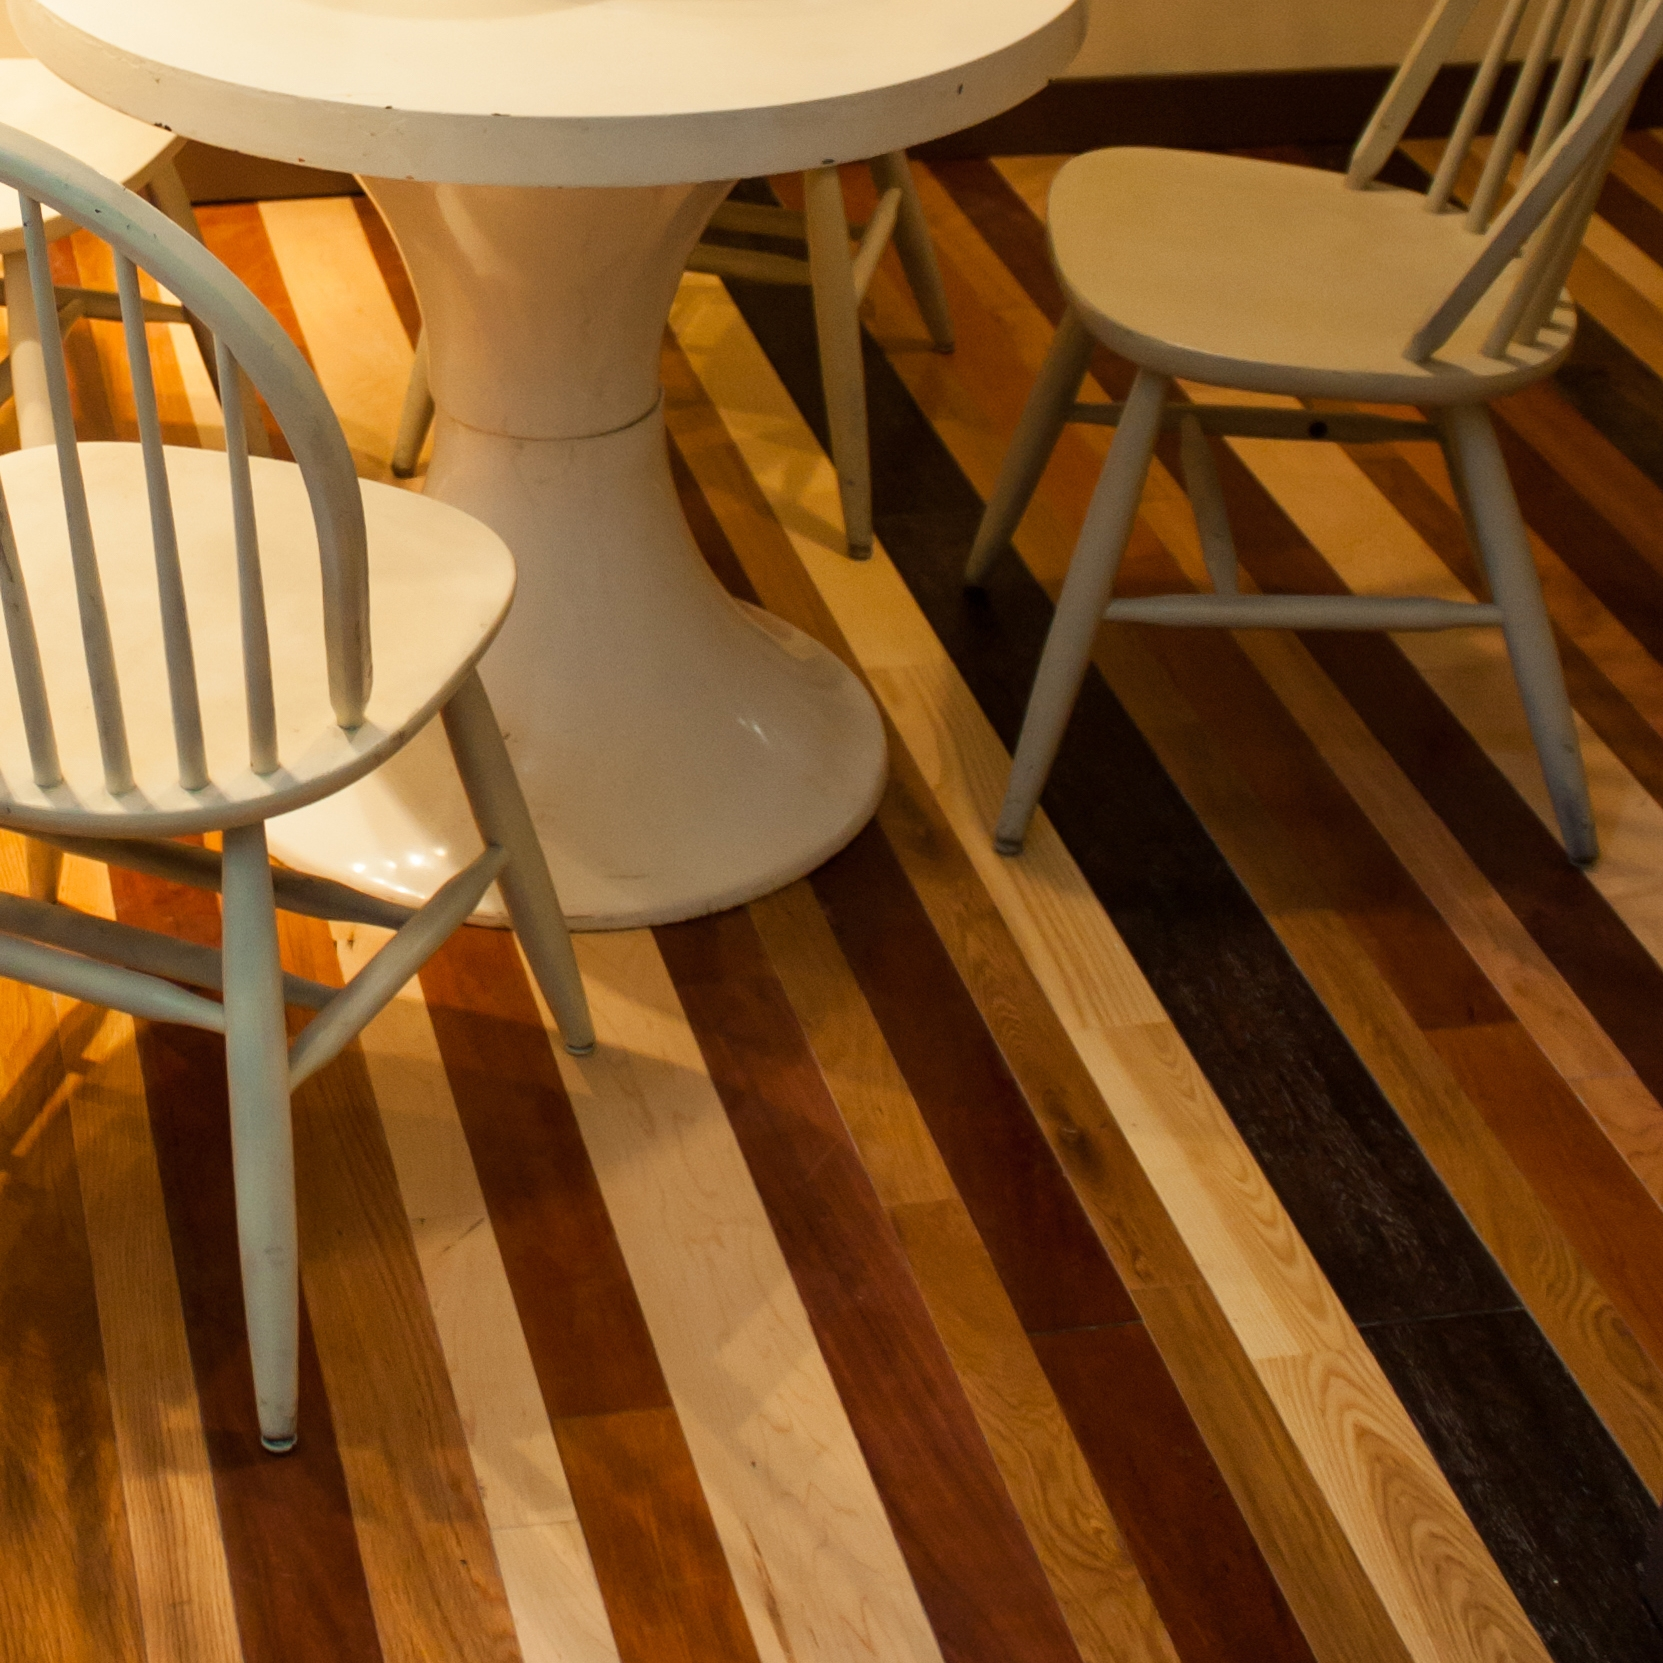 A variety of stains and plank widths creates a floor with visual interest and texture.